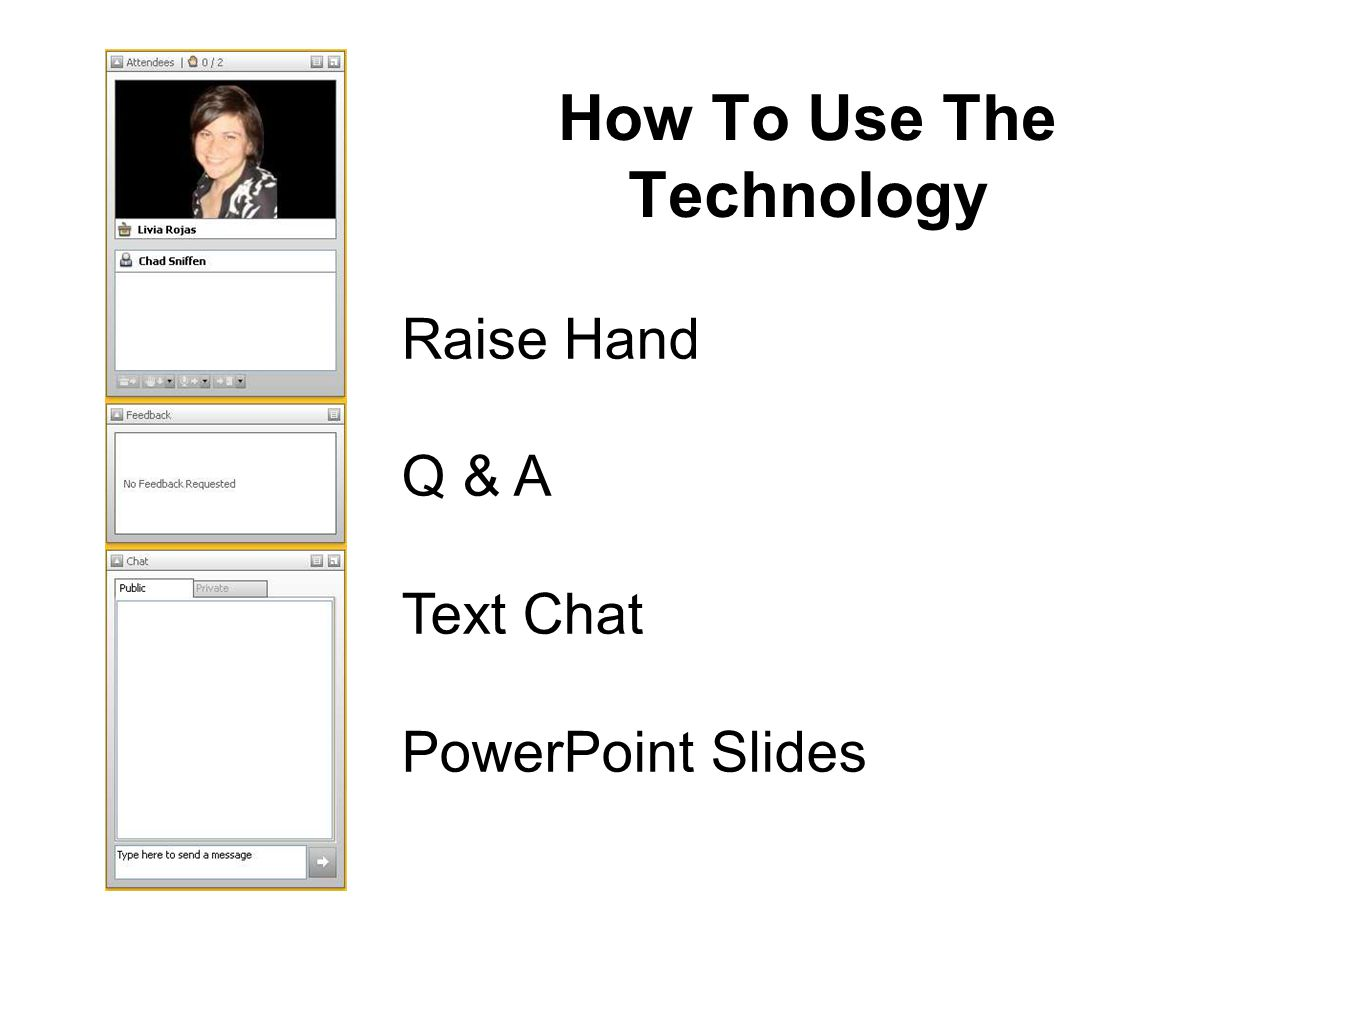 How To Use The Technology Raise Hand Q & A Text Chat PowerPoint Slides